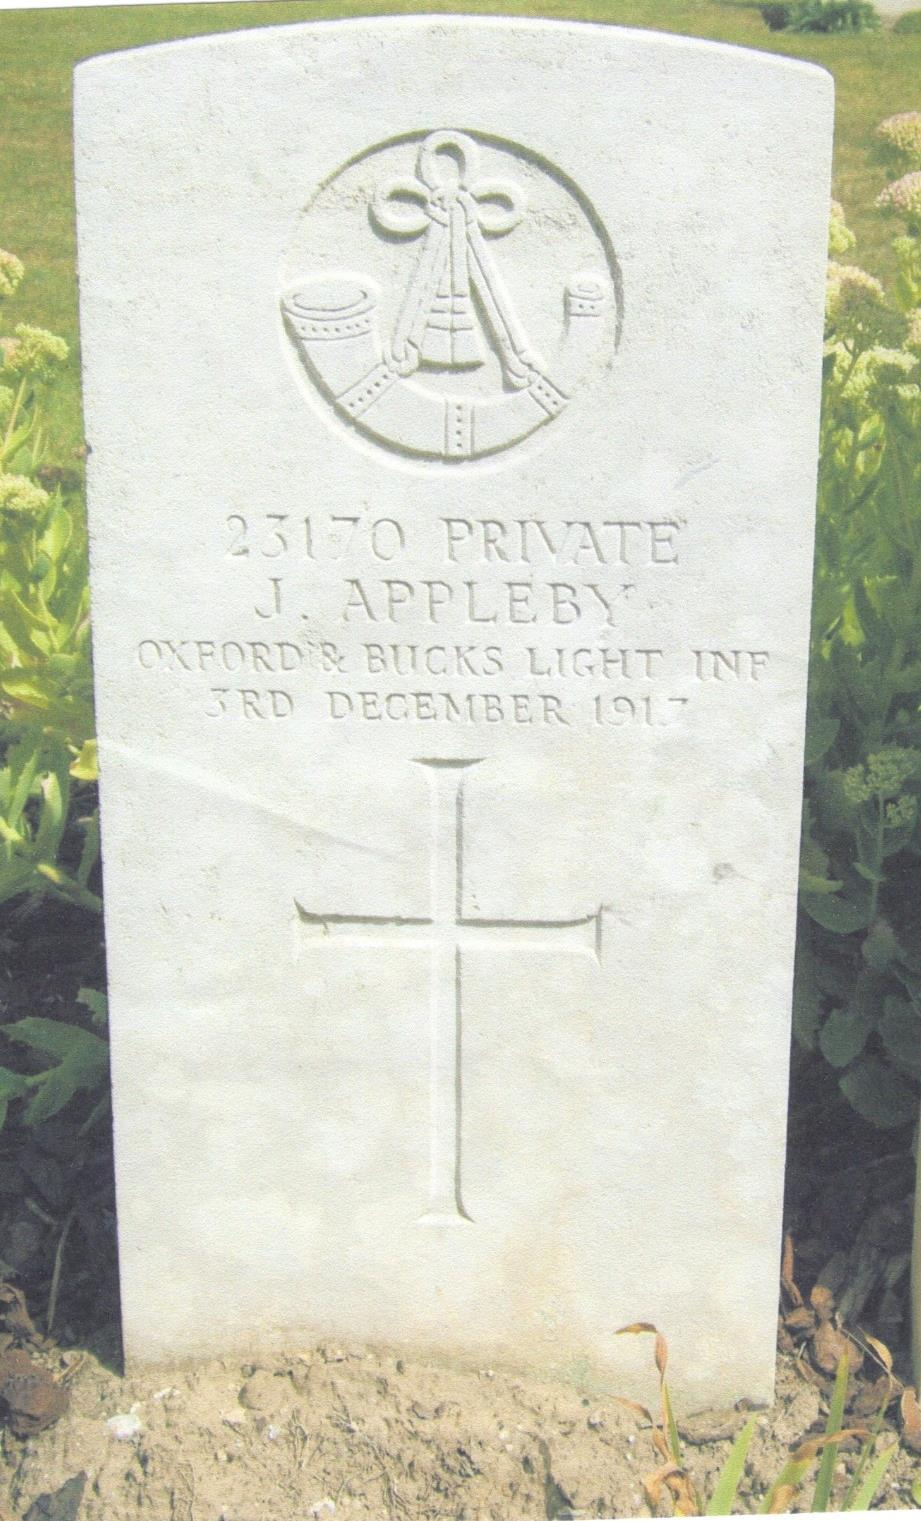 James Appleby 17 th July 1897-3 rd December 1917 Died from his wounds at a